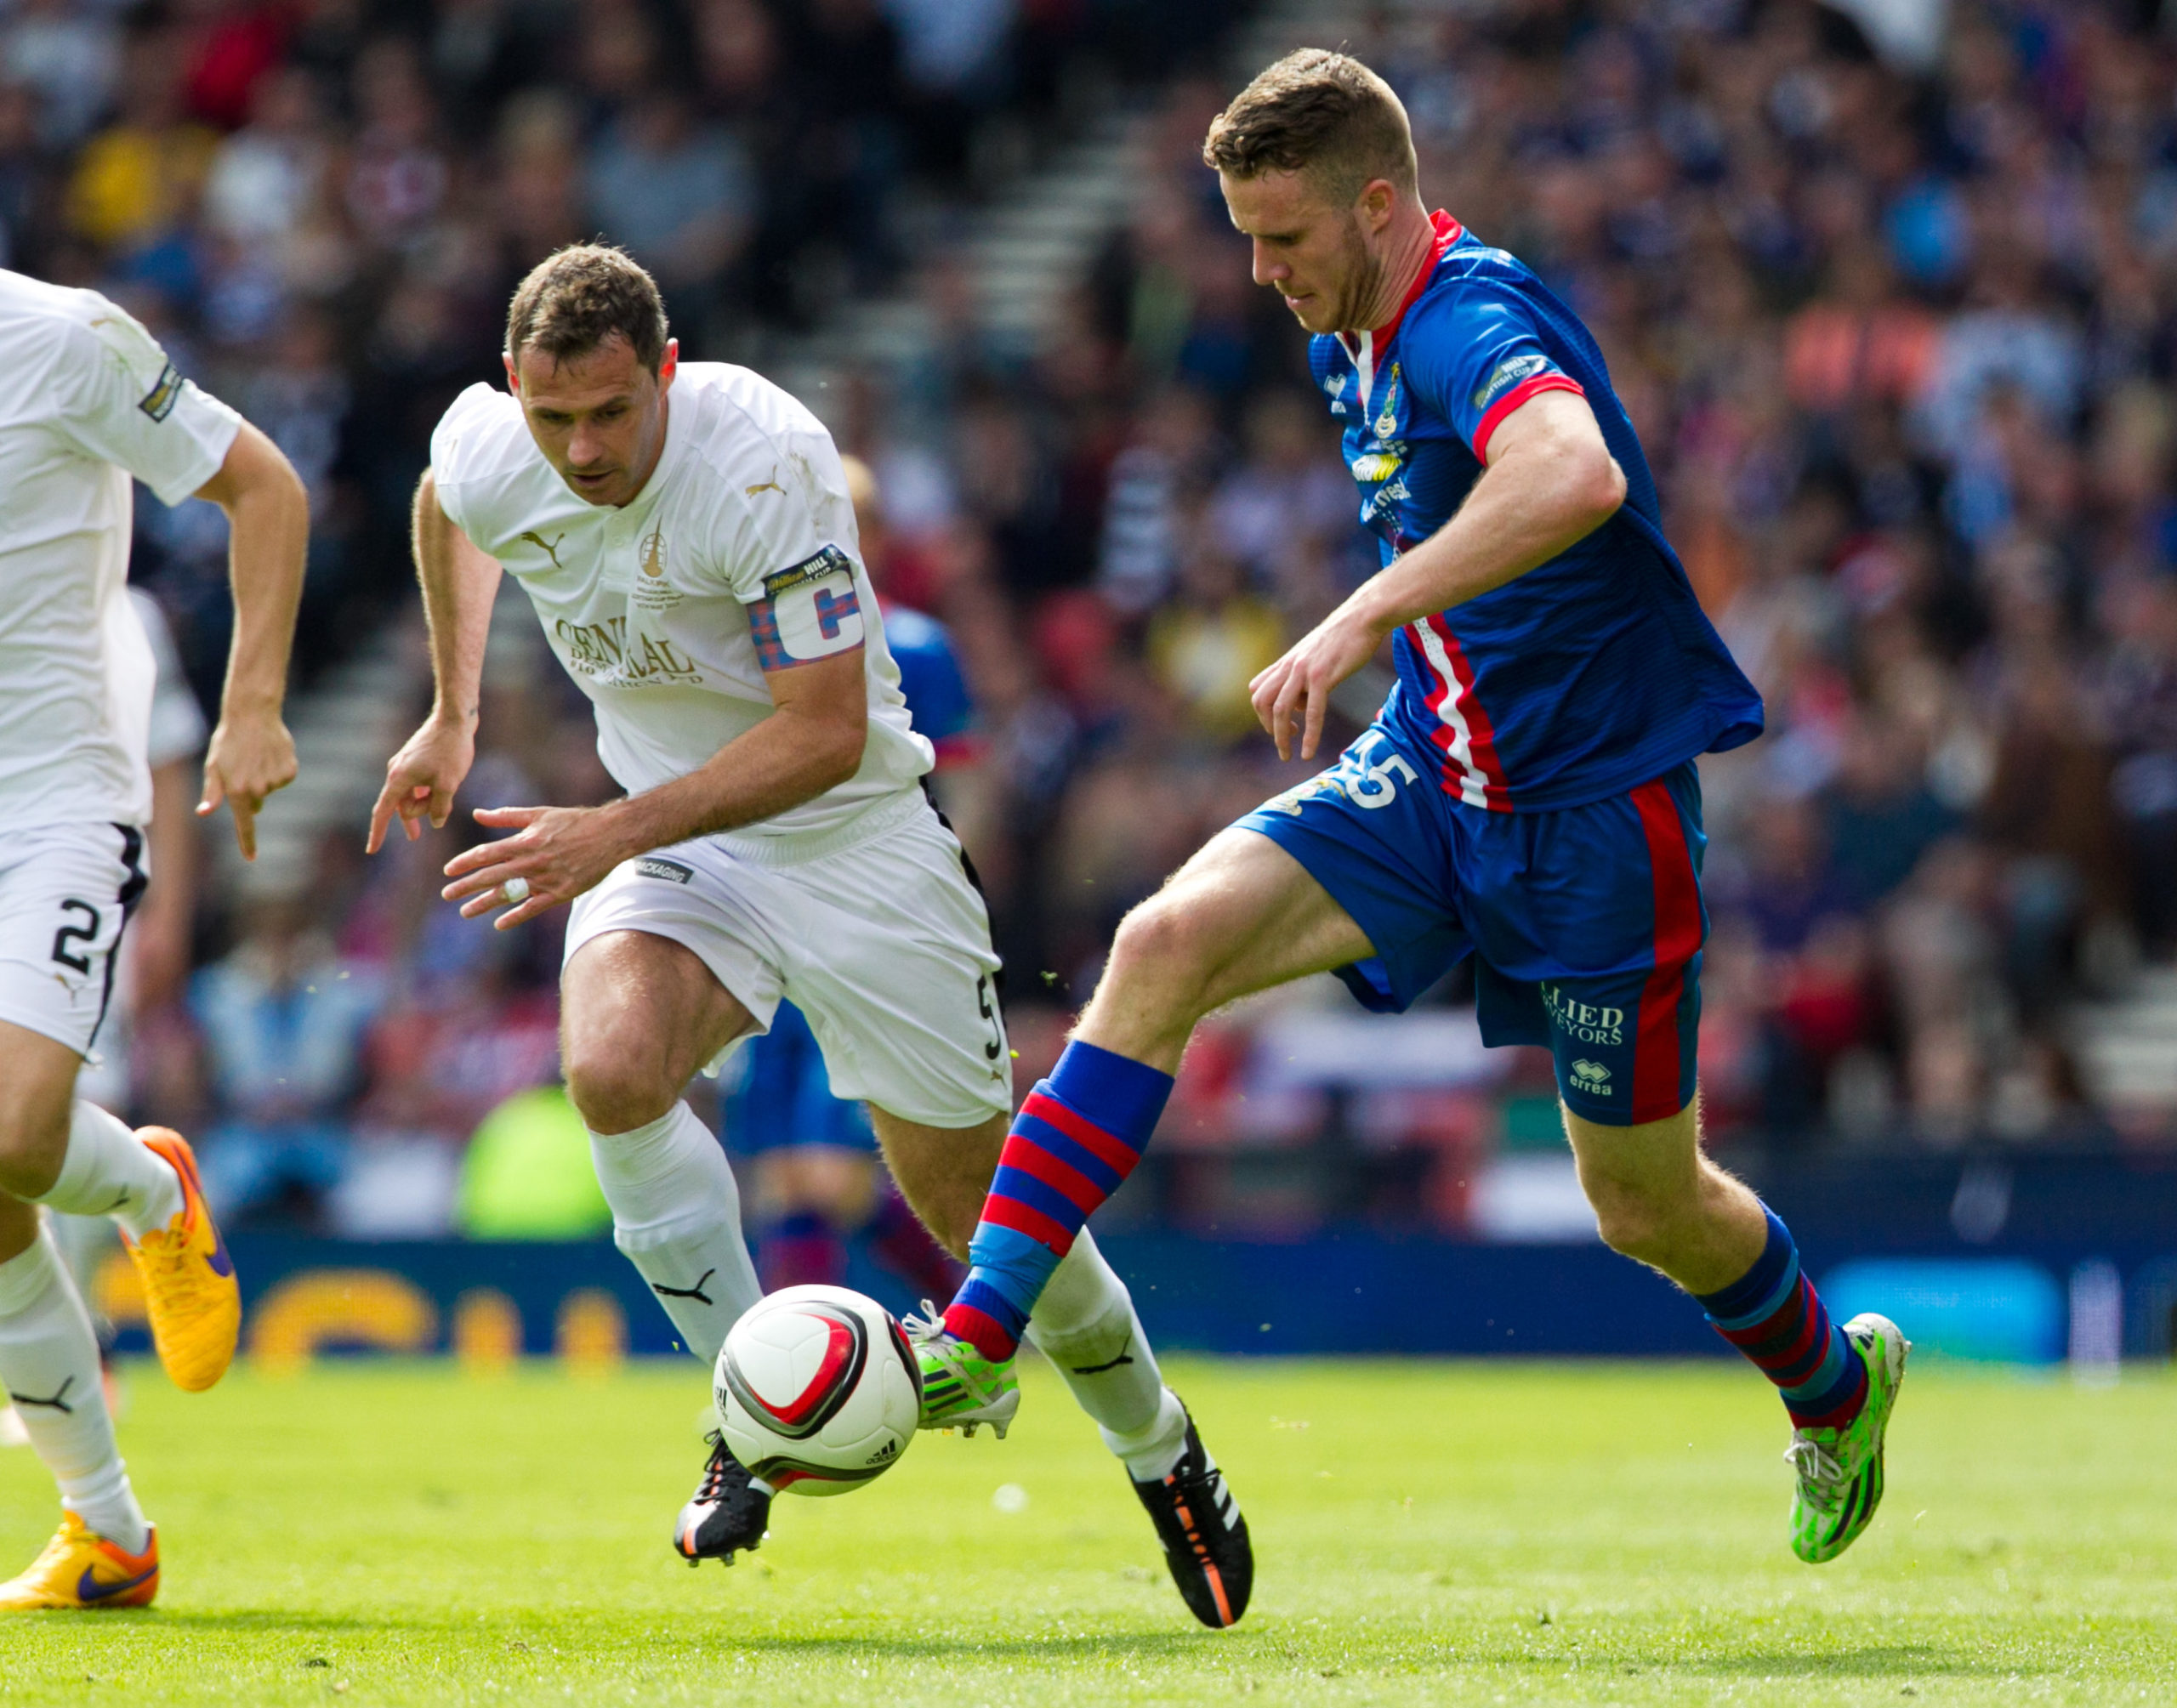 Marley Watkins in action for Caley Thistle.